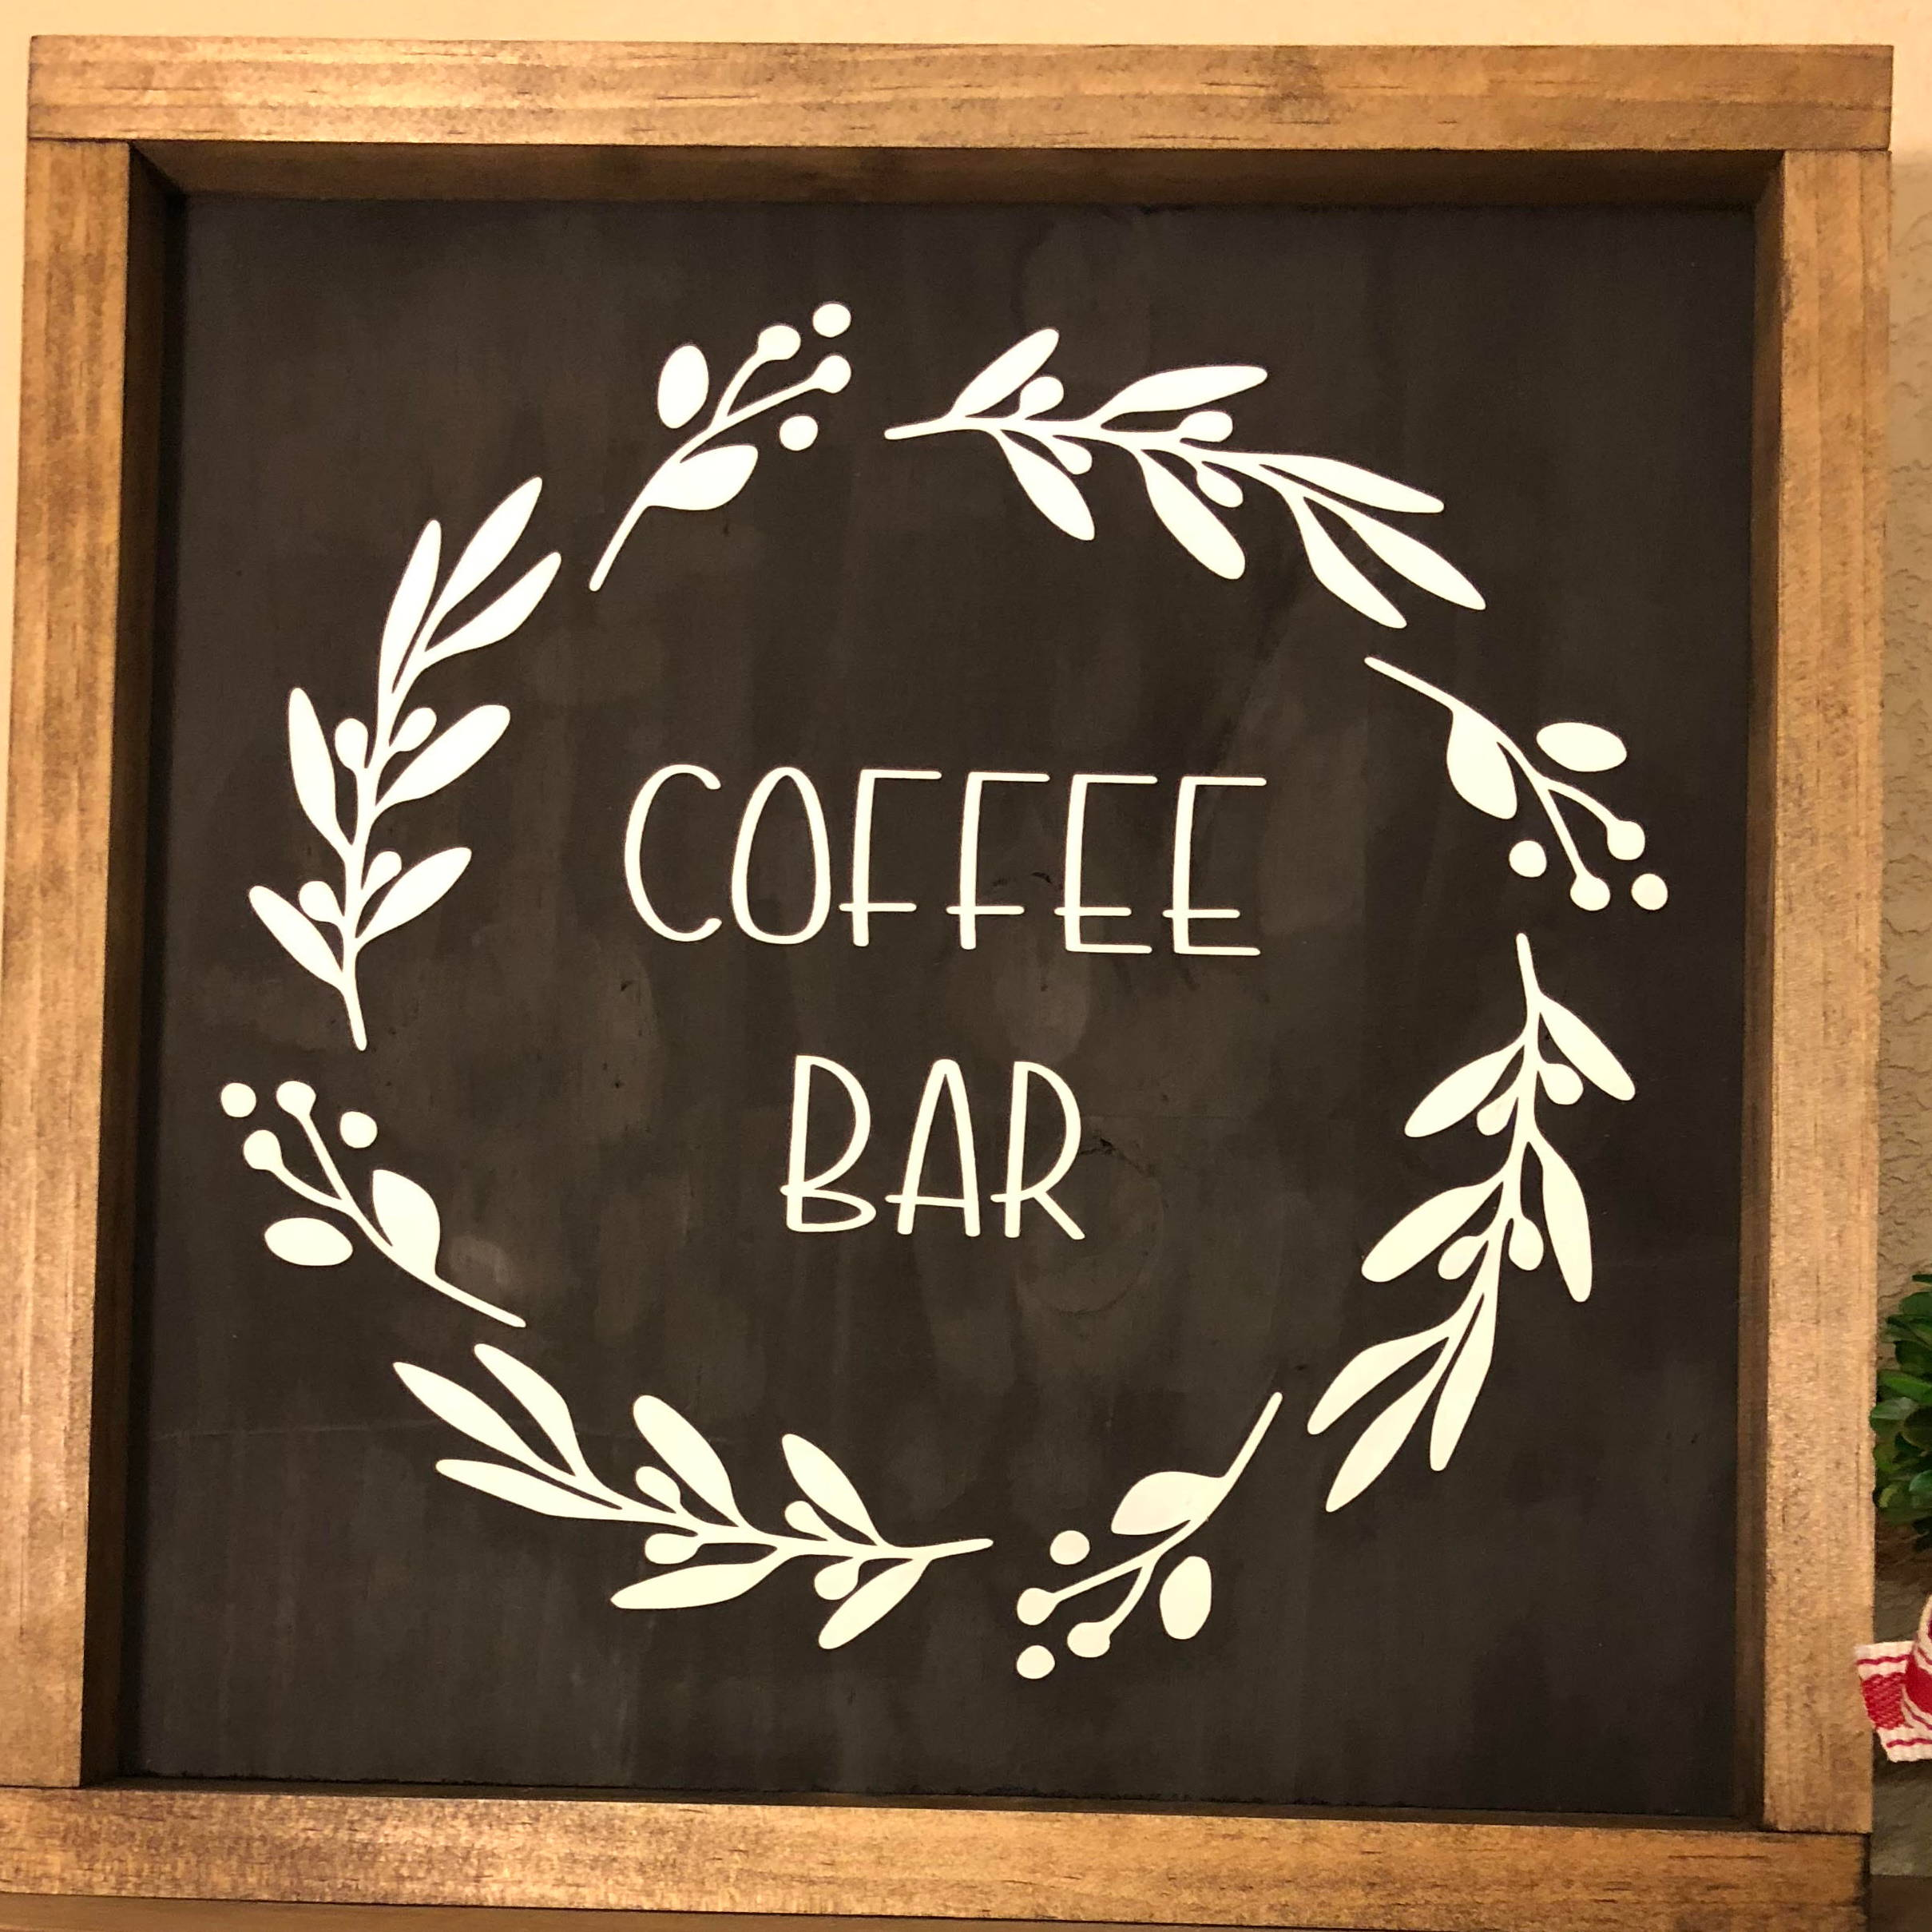 Handmade wooden frame sign with the text